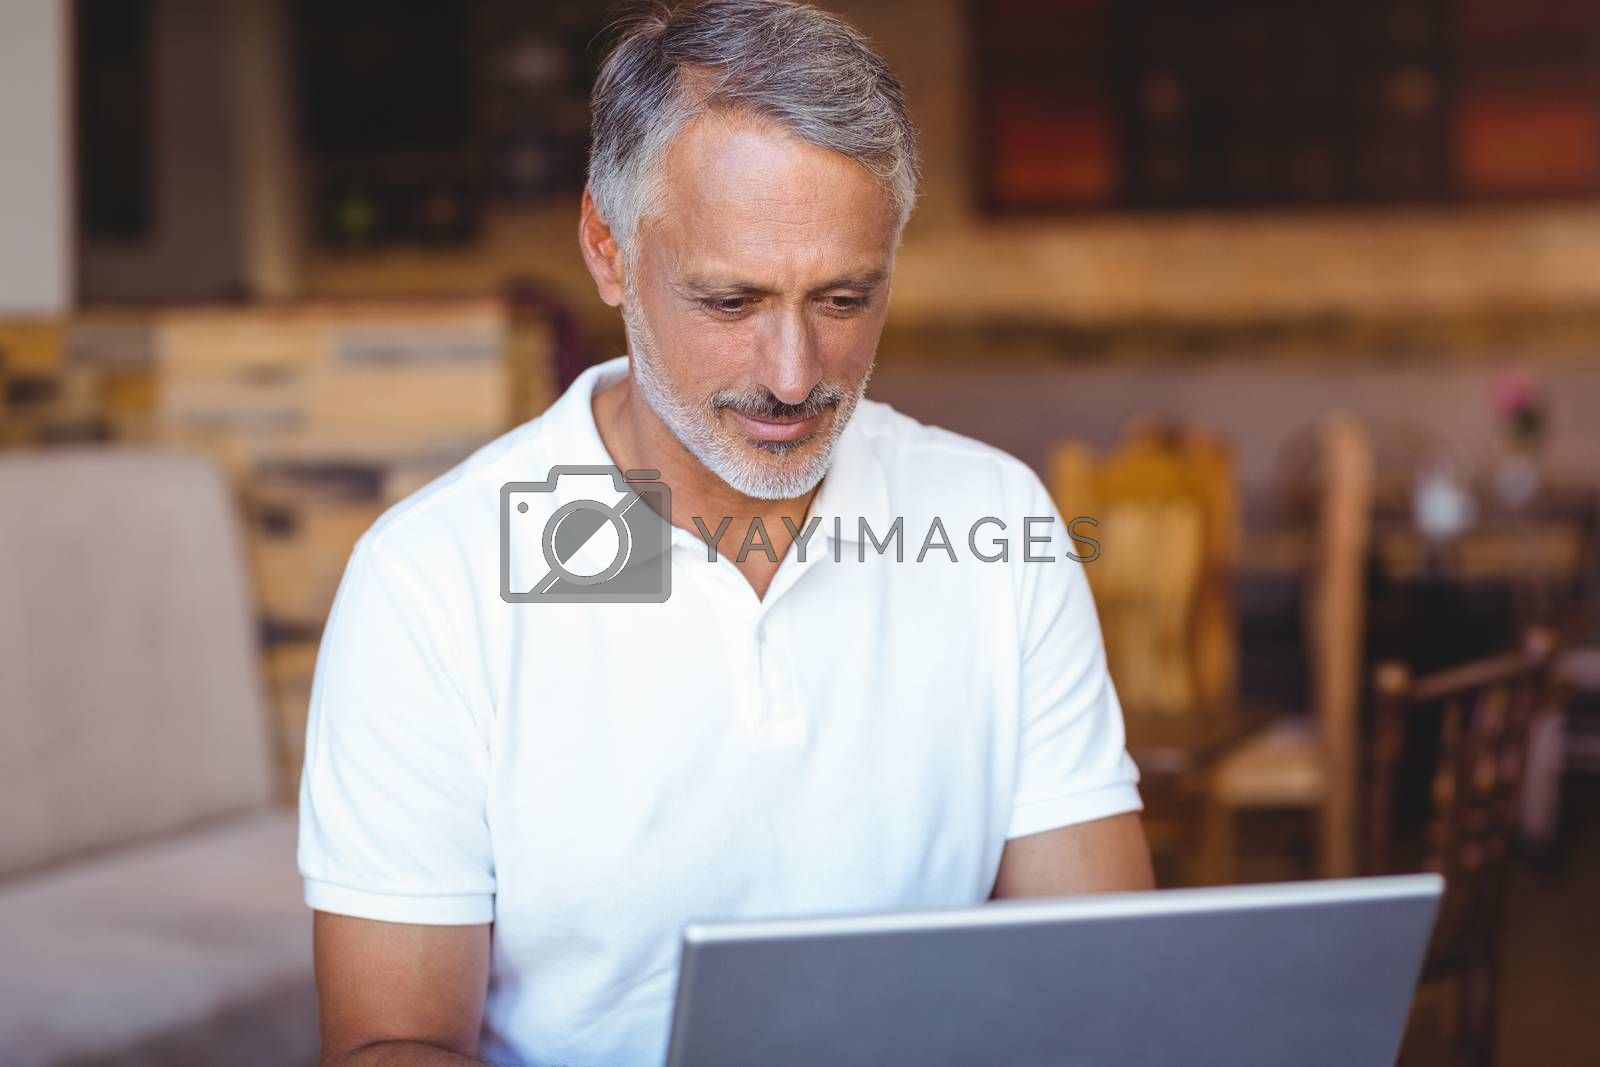 Royalty free image of Happy man using his laptop computer by Wavebreakmedia